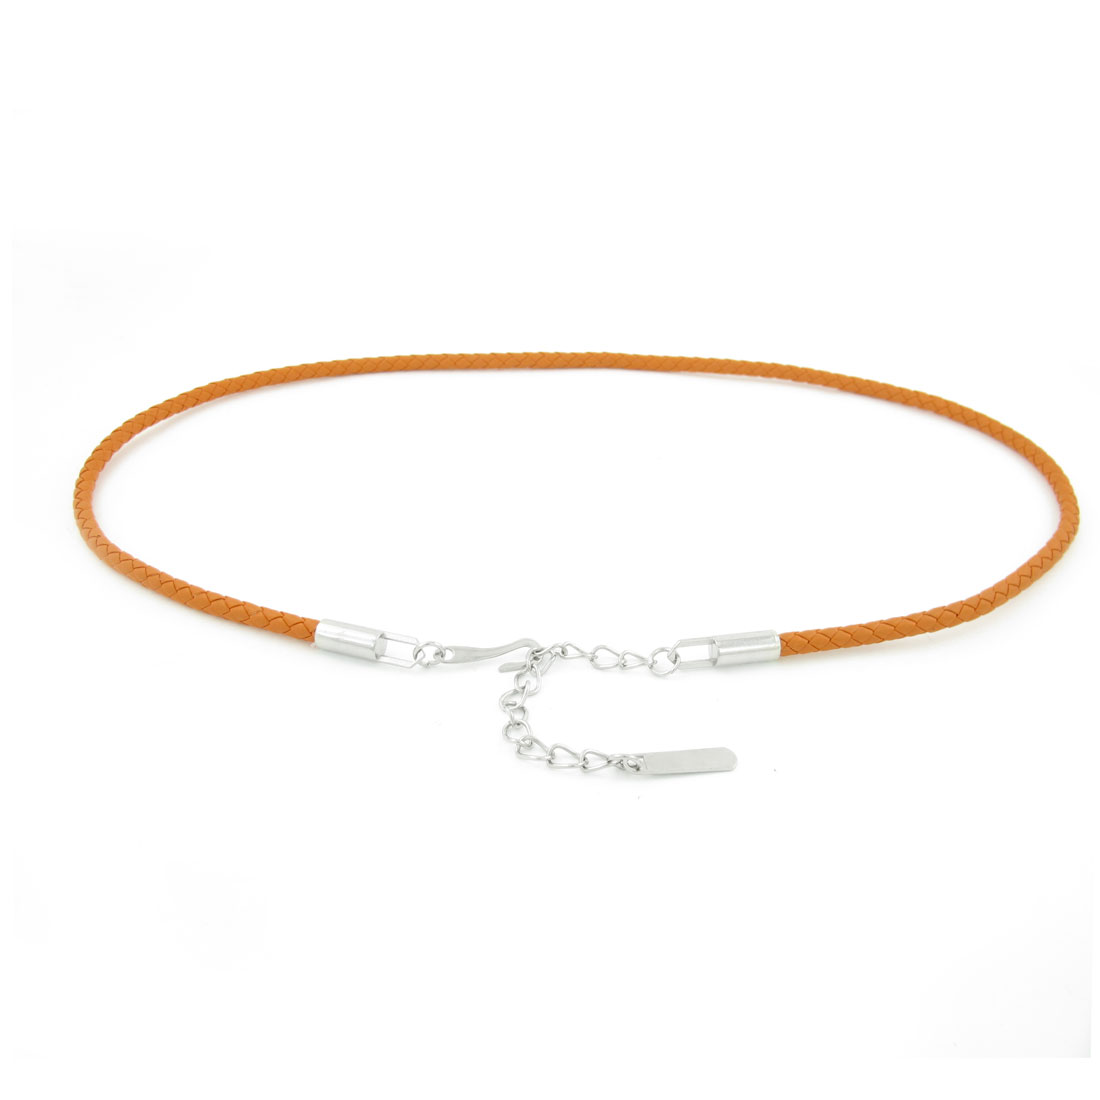 Chain End Orange Faux Leather Braided Band Waist Belt for Lady